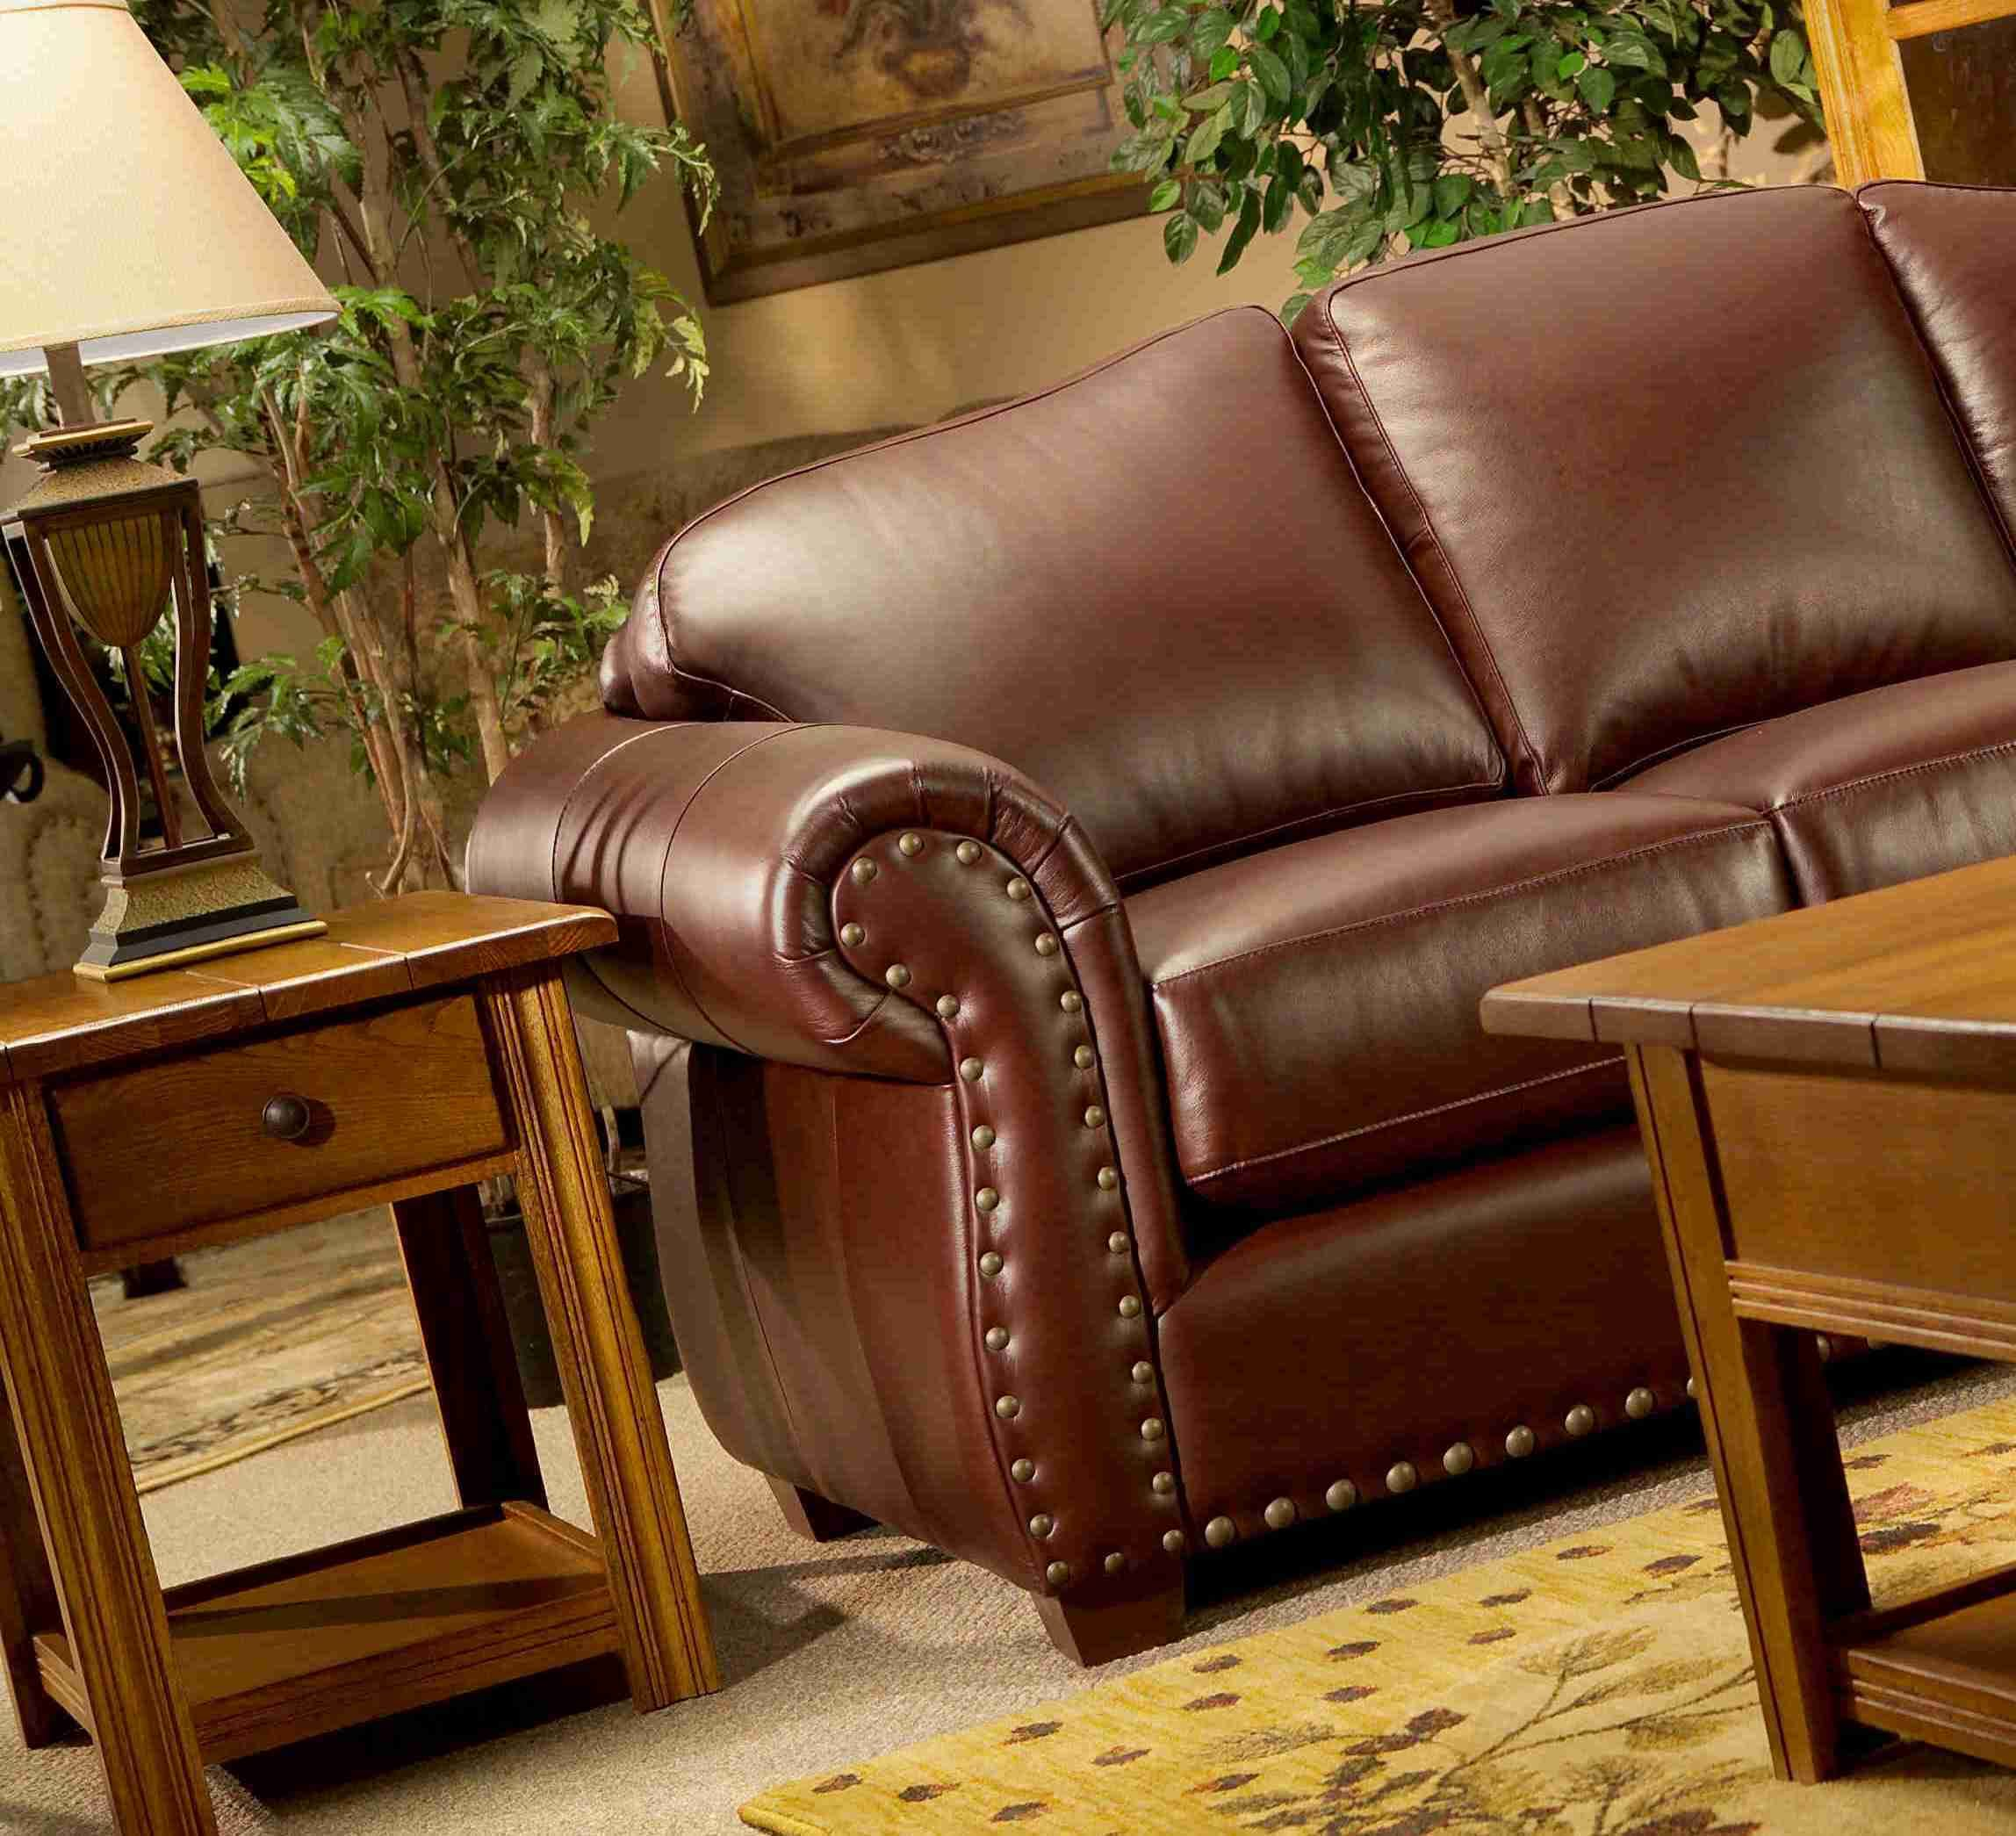 Conway Furniture In Listowel, Ontario | 519 291 3820 | 411.ca